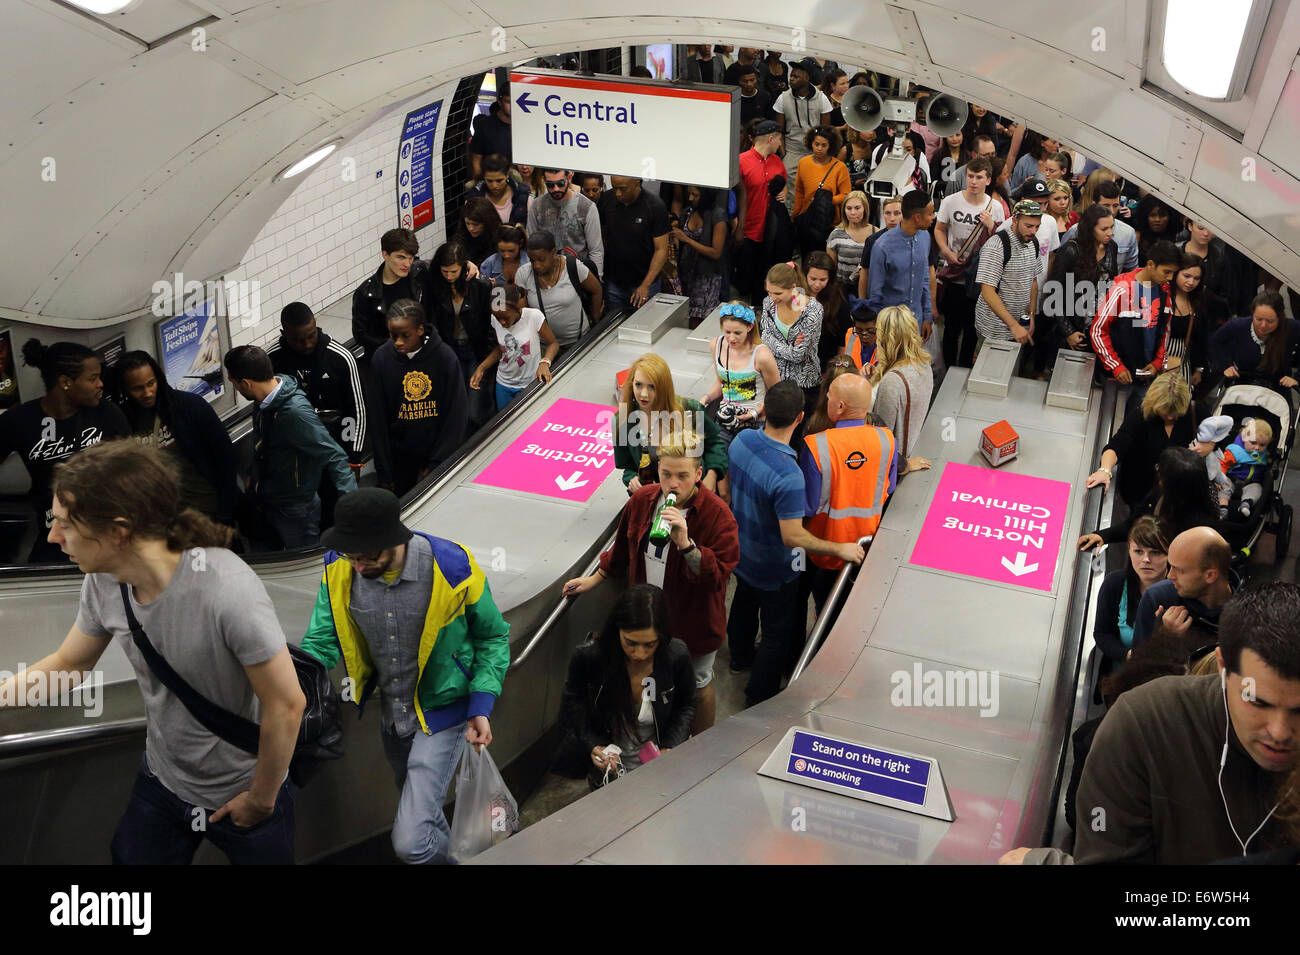 Rush hour, London underground, UK  Photo : Pixstory / alamy - Stock Image